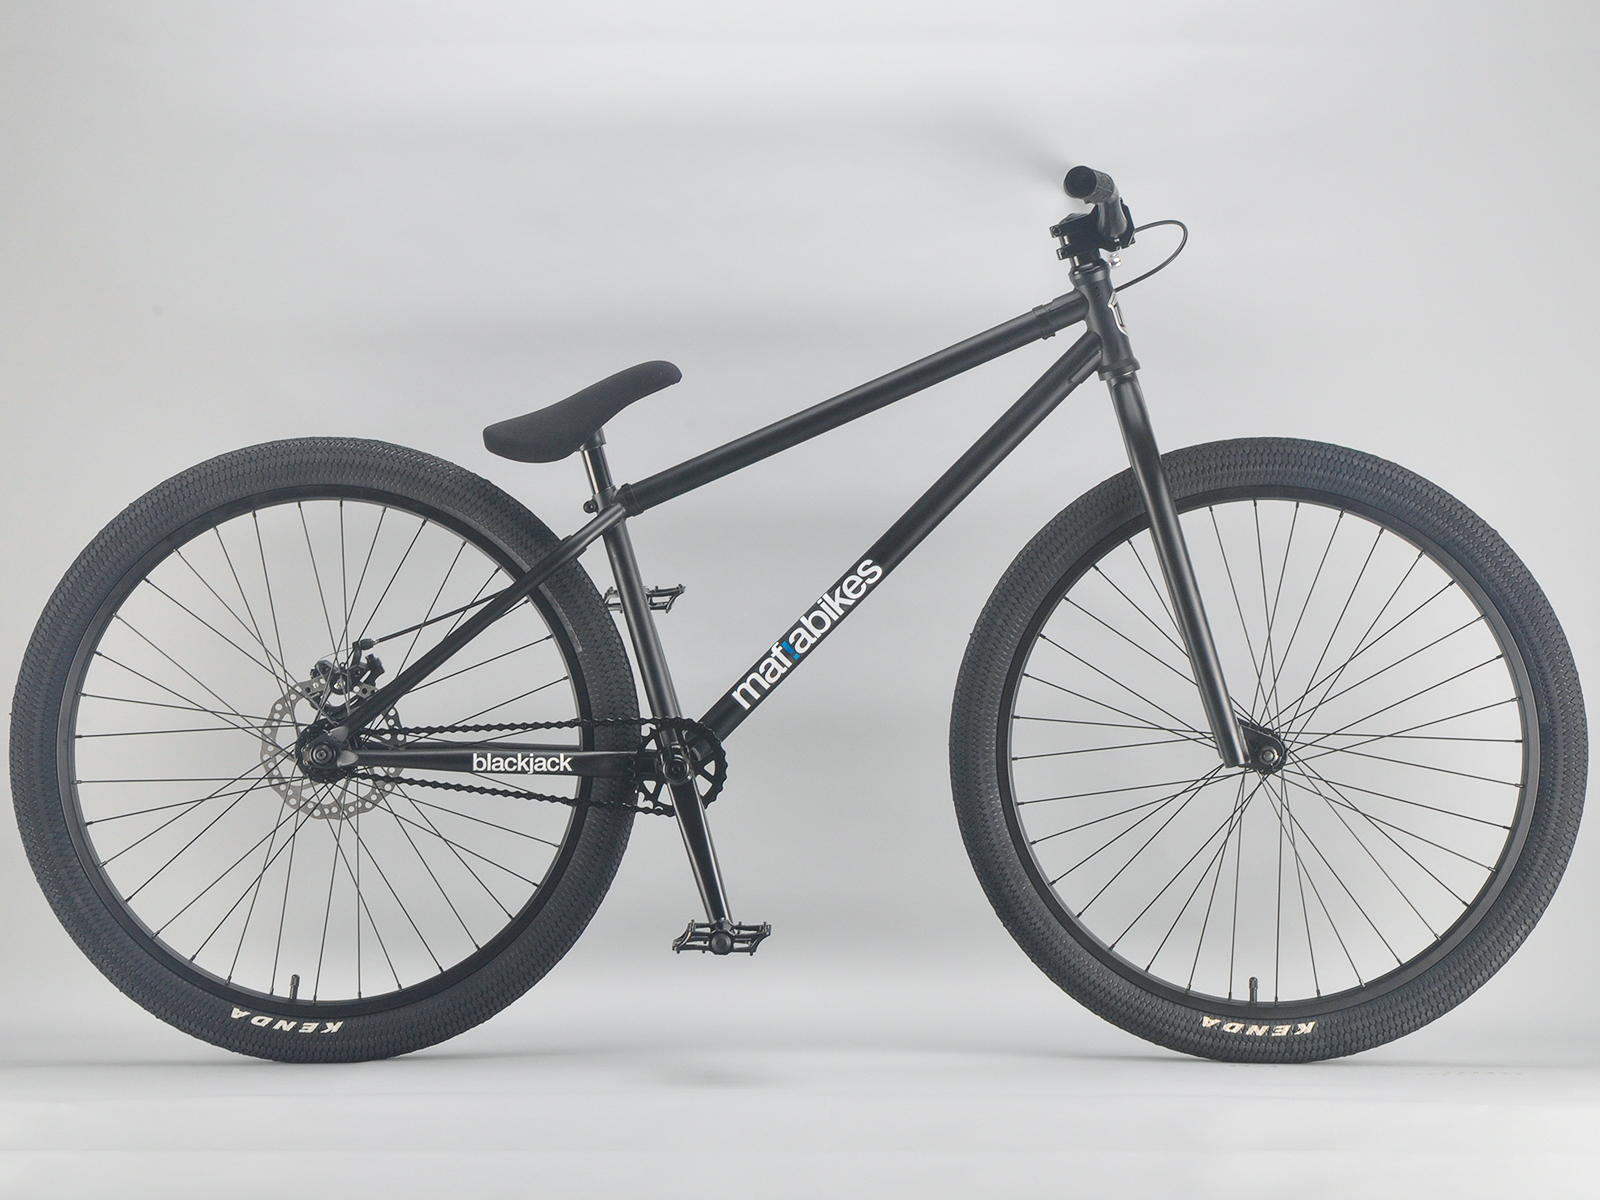 Mafiabikes Blackjack 26 inch bmx jump bike available in multiple